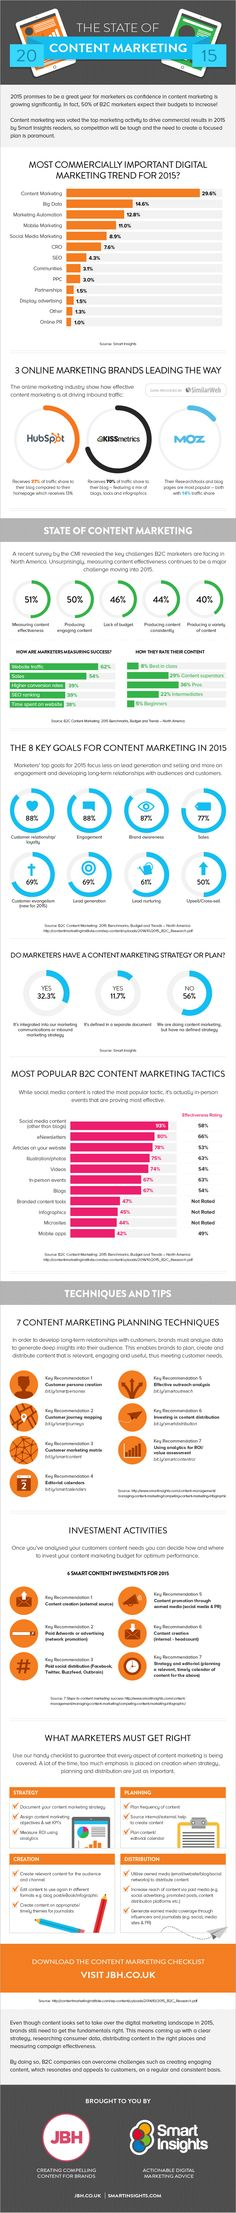 It's a phrase marketers have been hearing for the past 15 years or so, ad nauseam: Content is King.  And in 2015, it seems that content marketing still reigns supreme when it comes to the most commercially important digital marketing trend.Yet according to this infographic, the biggest challenge content marketers face is measuring content effectiveness, while an overwhelming 56% of marketers don't have a content marketing strategy!  That's where data insights on content strategy come…